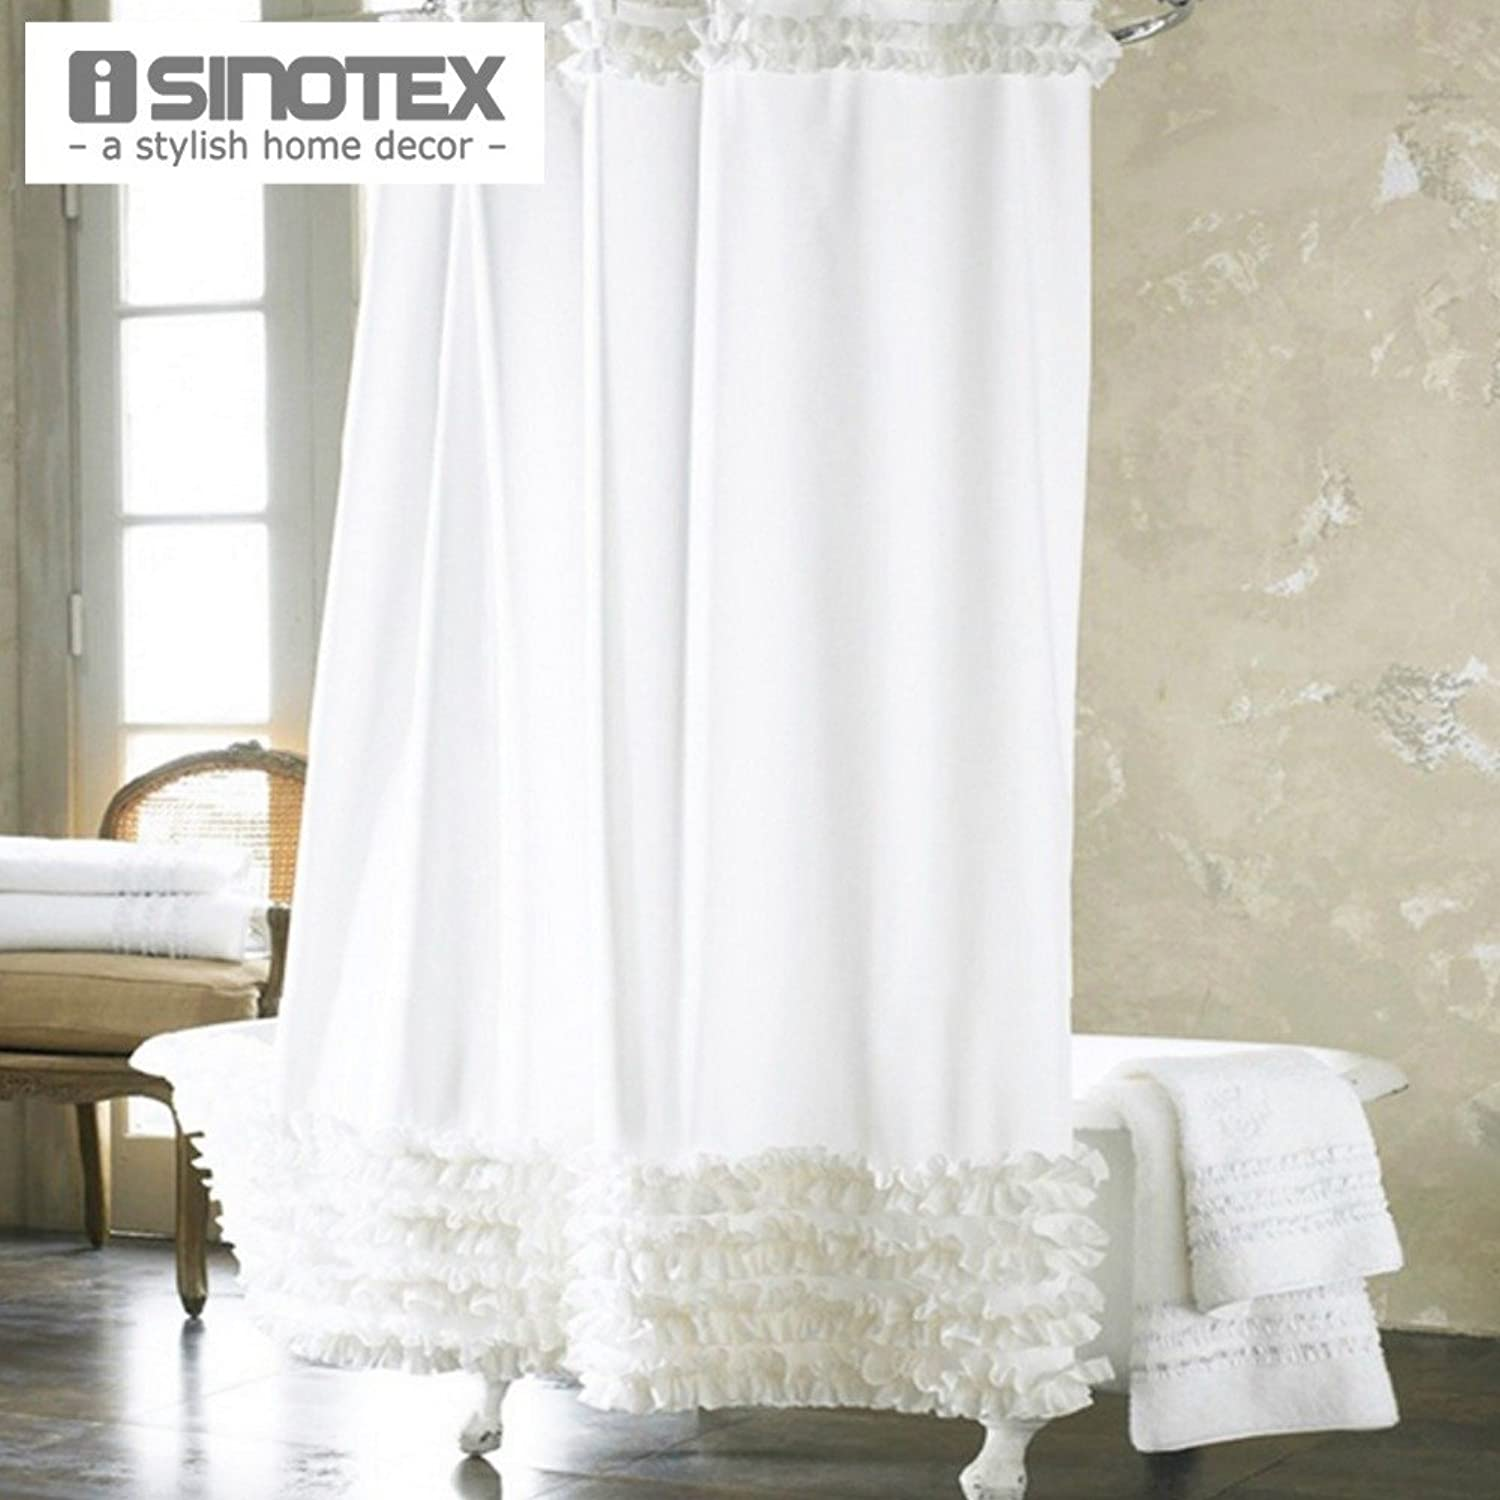 White, W180 x H200cm   Home Decoration Bathroom Shower Curtain Waterproof Moldproof Solid Polyester Fabric Lace Bath Curtain Elegant Cortina +12 Hooks